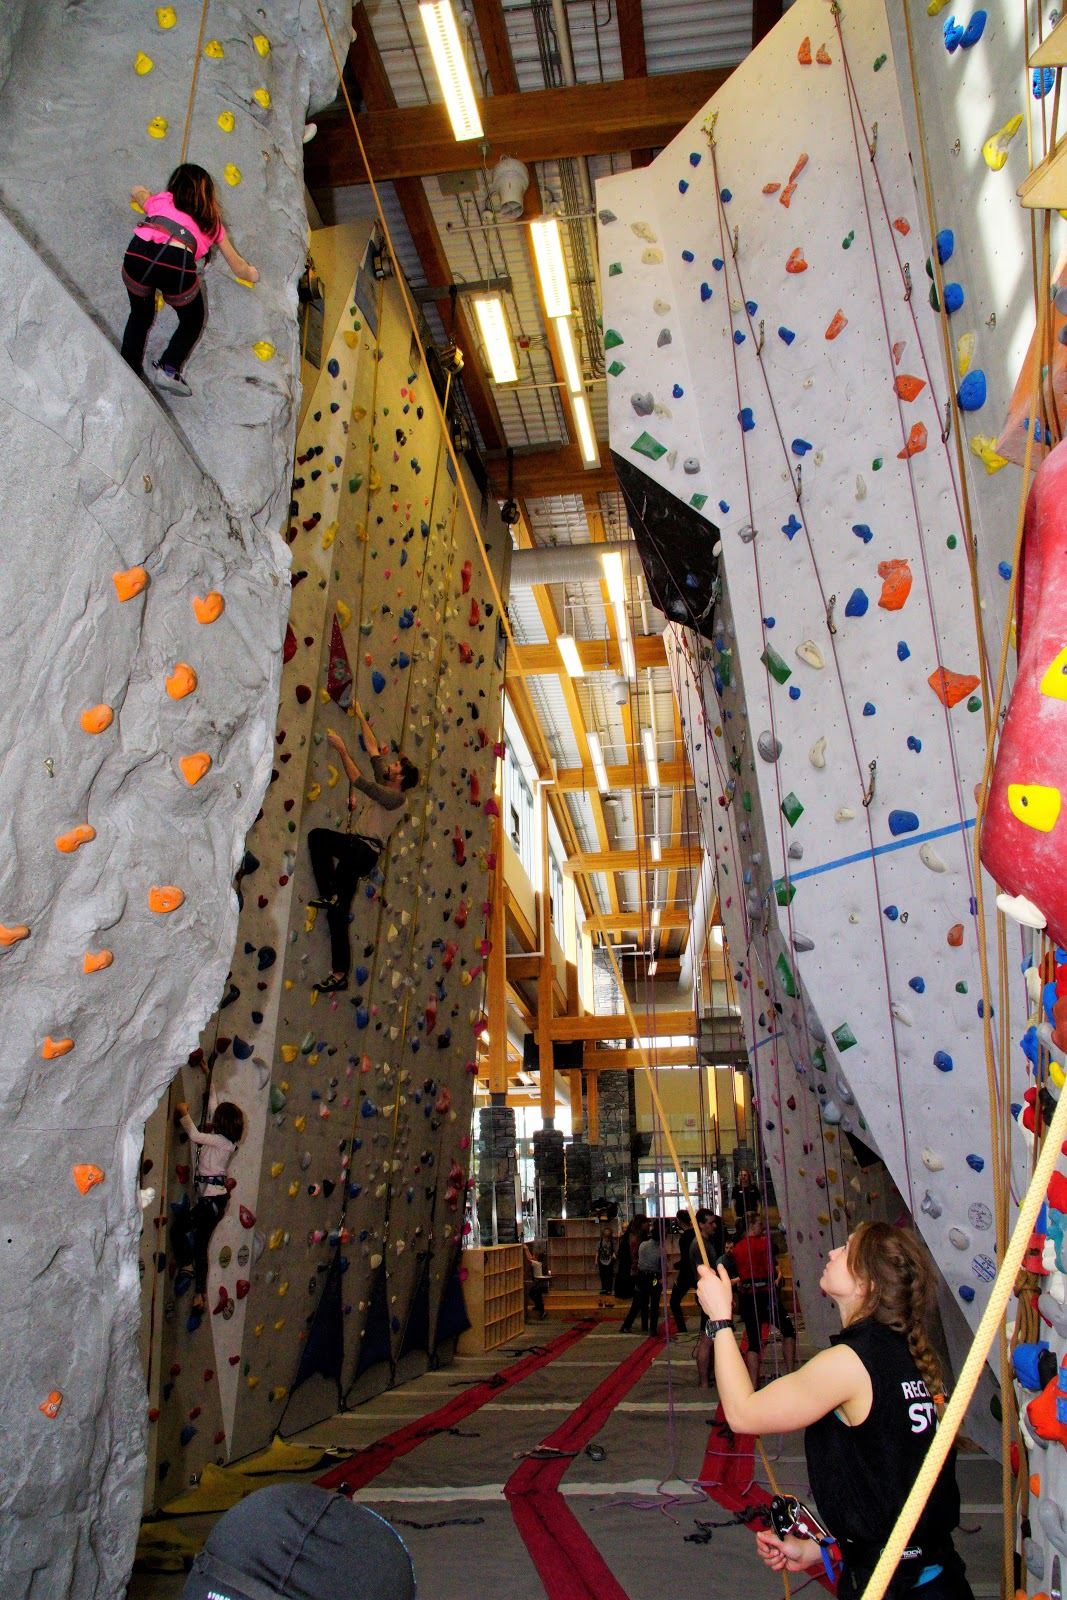 Climbing gym at Elevation Place, Canmore